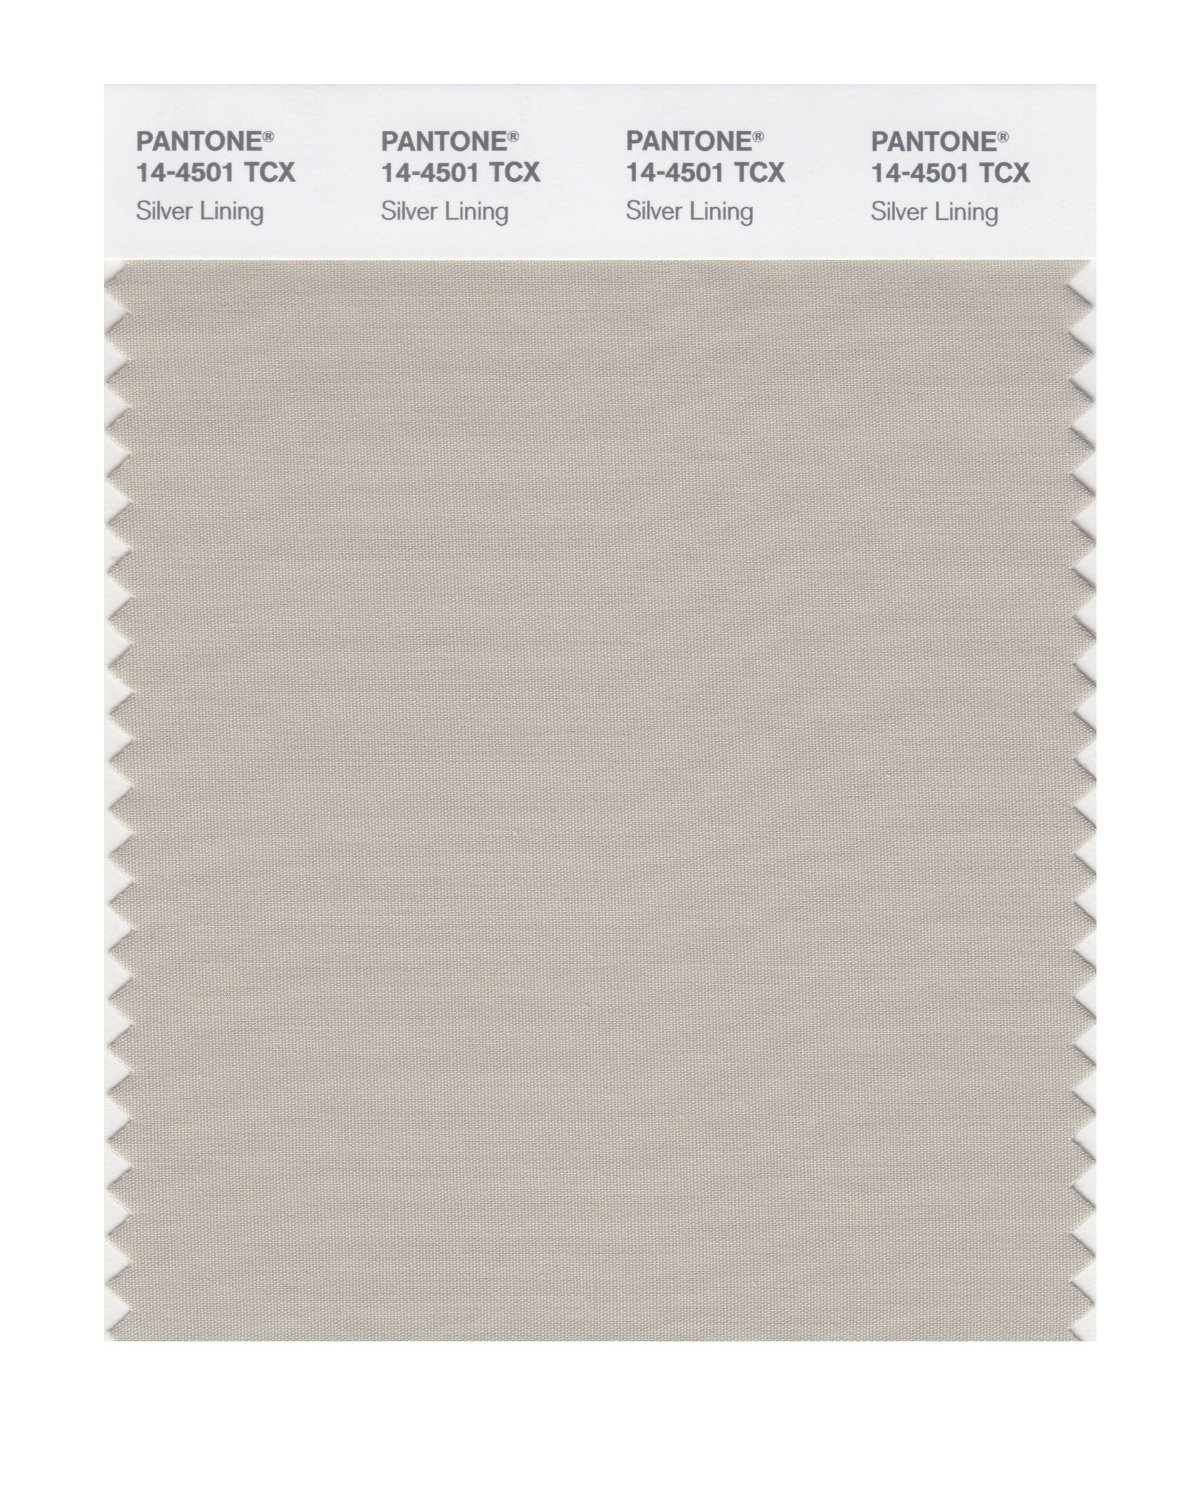 Pantone Smart Swatch 14-4501 Silver Lining